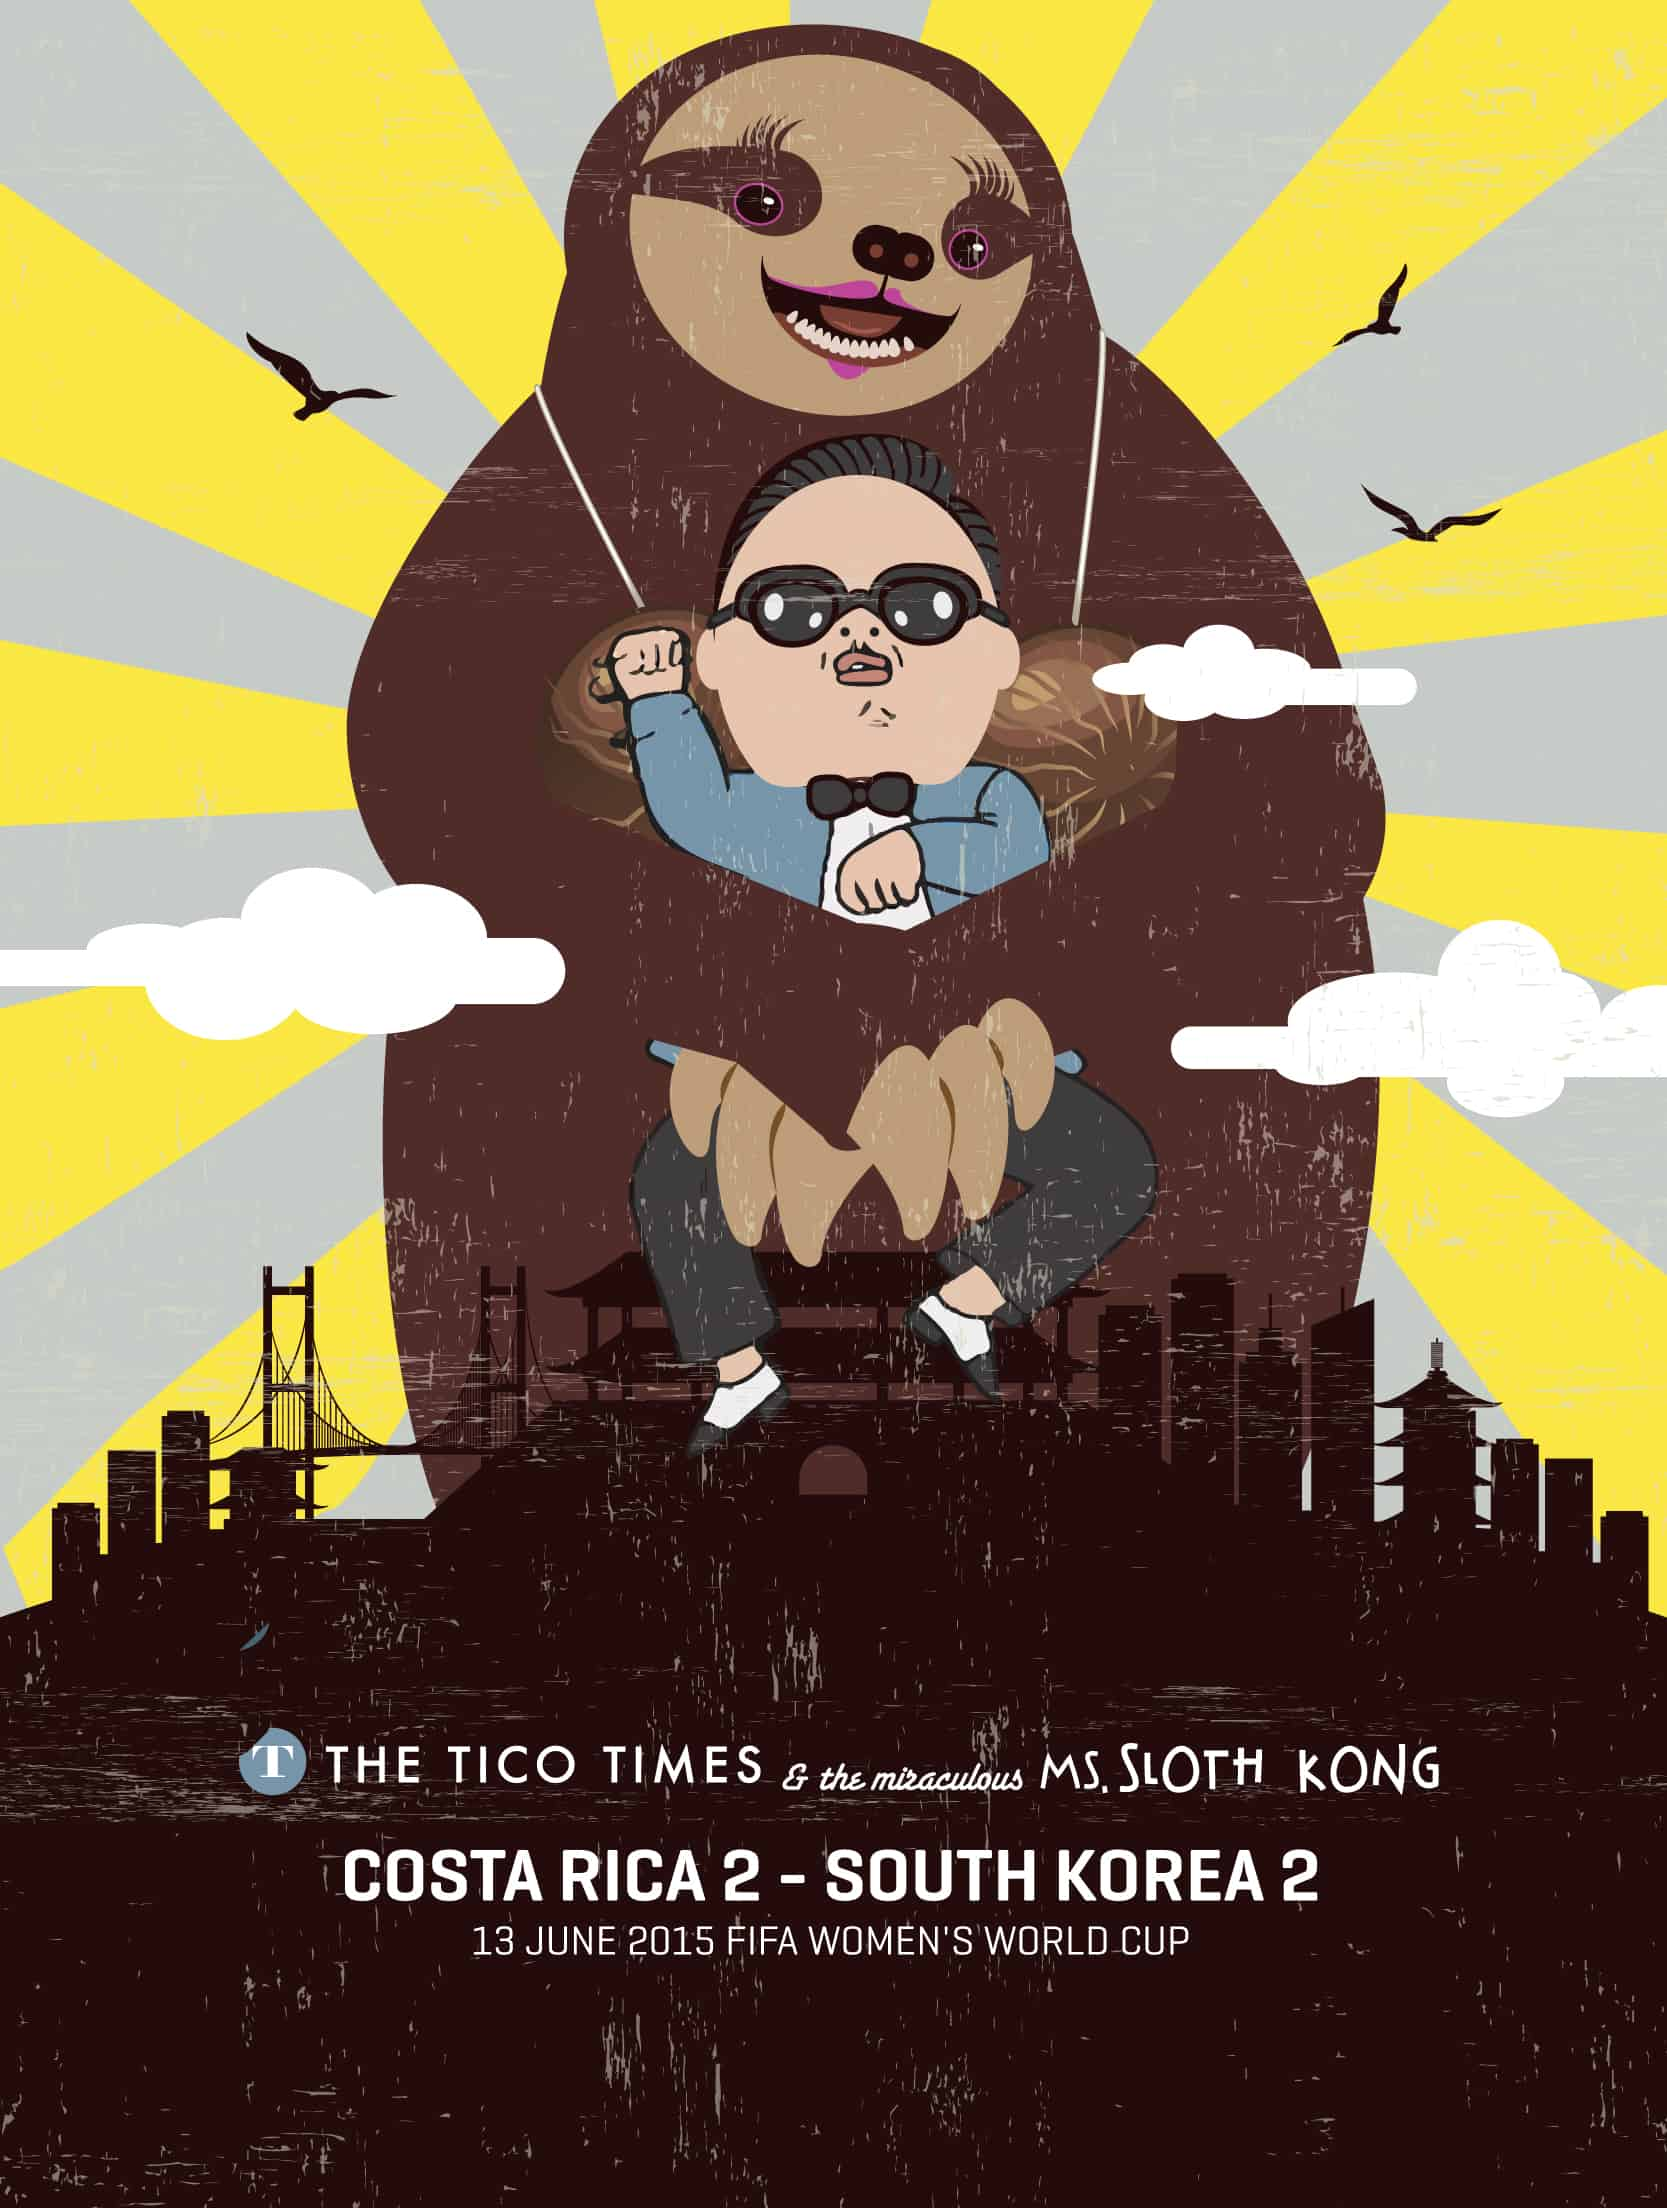 Ms. Sloth Kong allegedly seized the opportunity to sloth-hug Gangnam Style performer Psy.